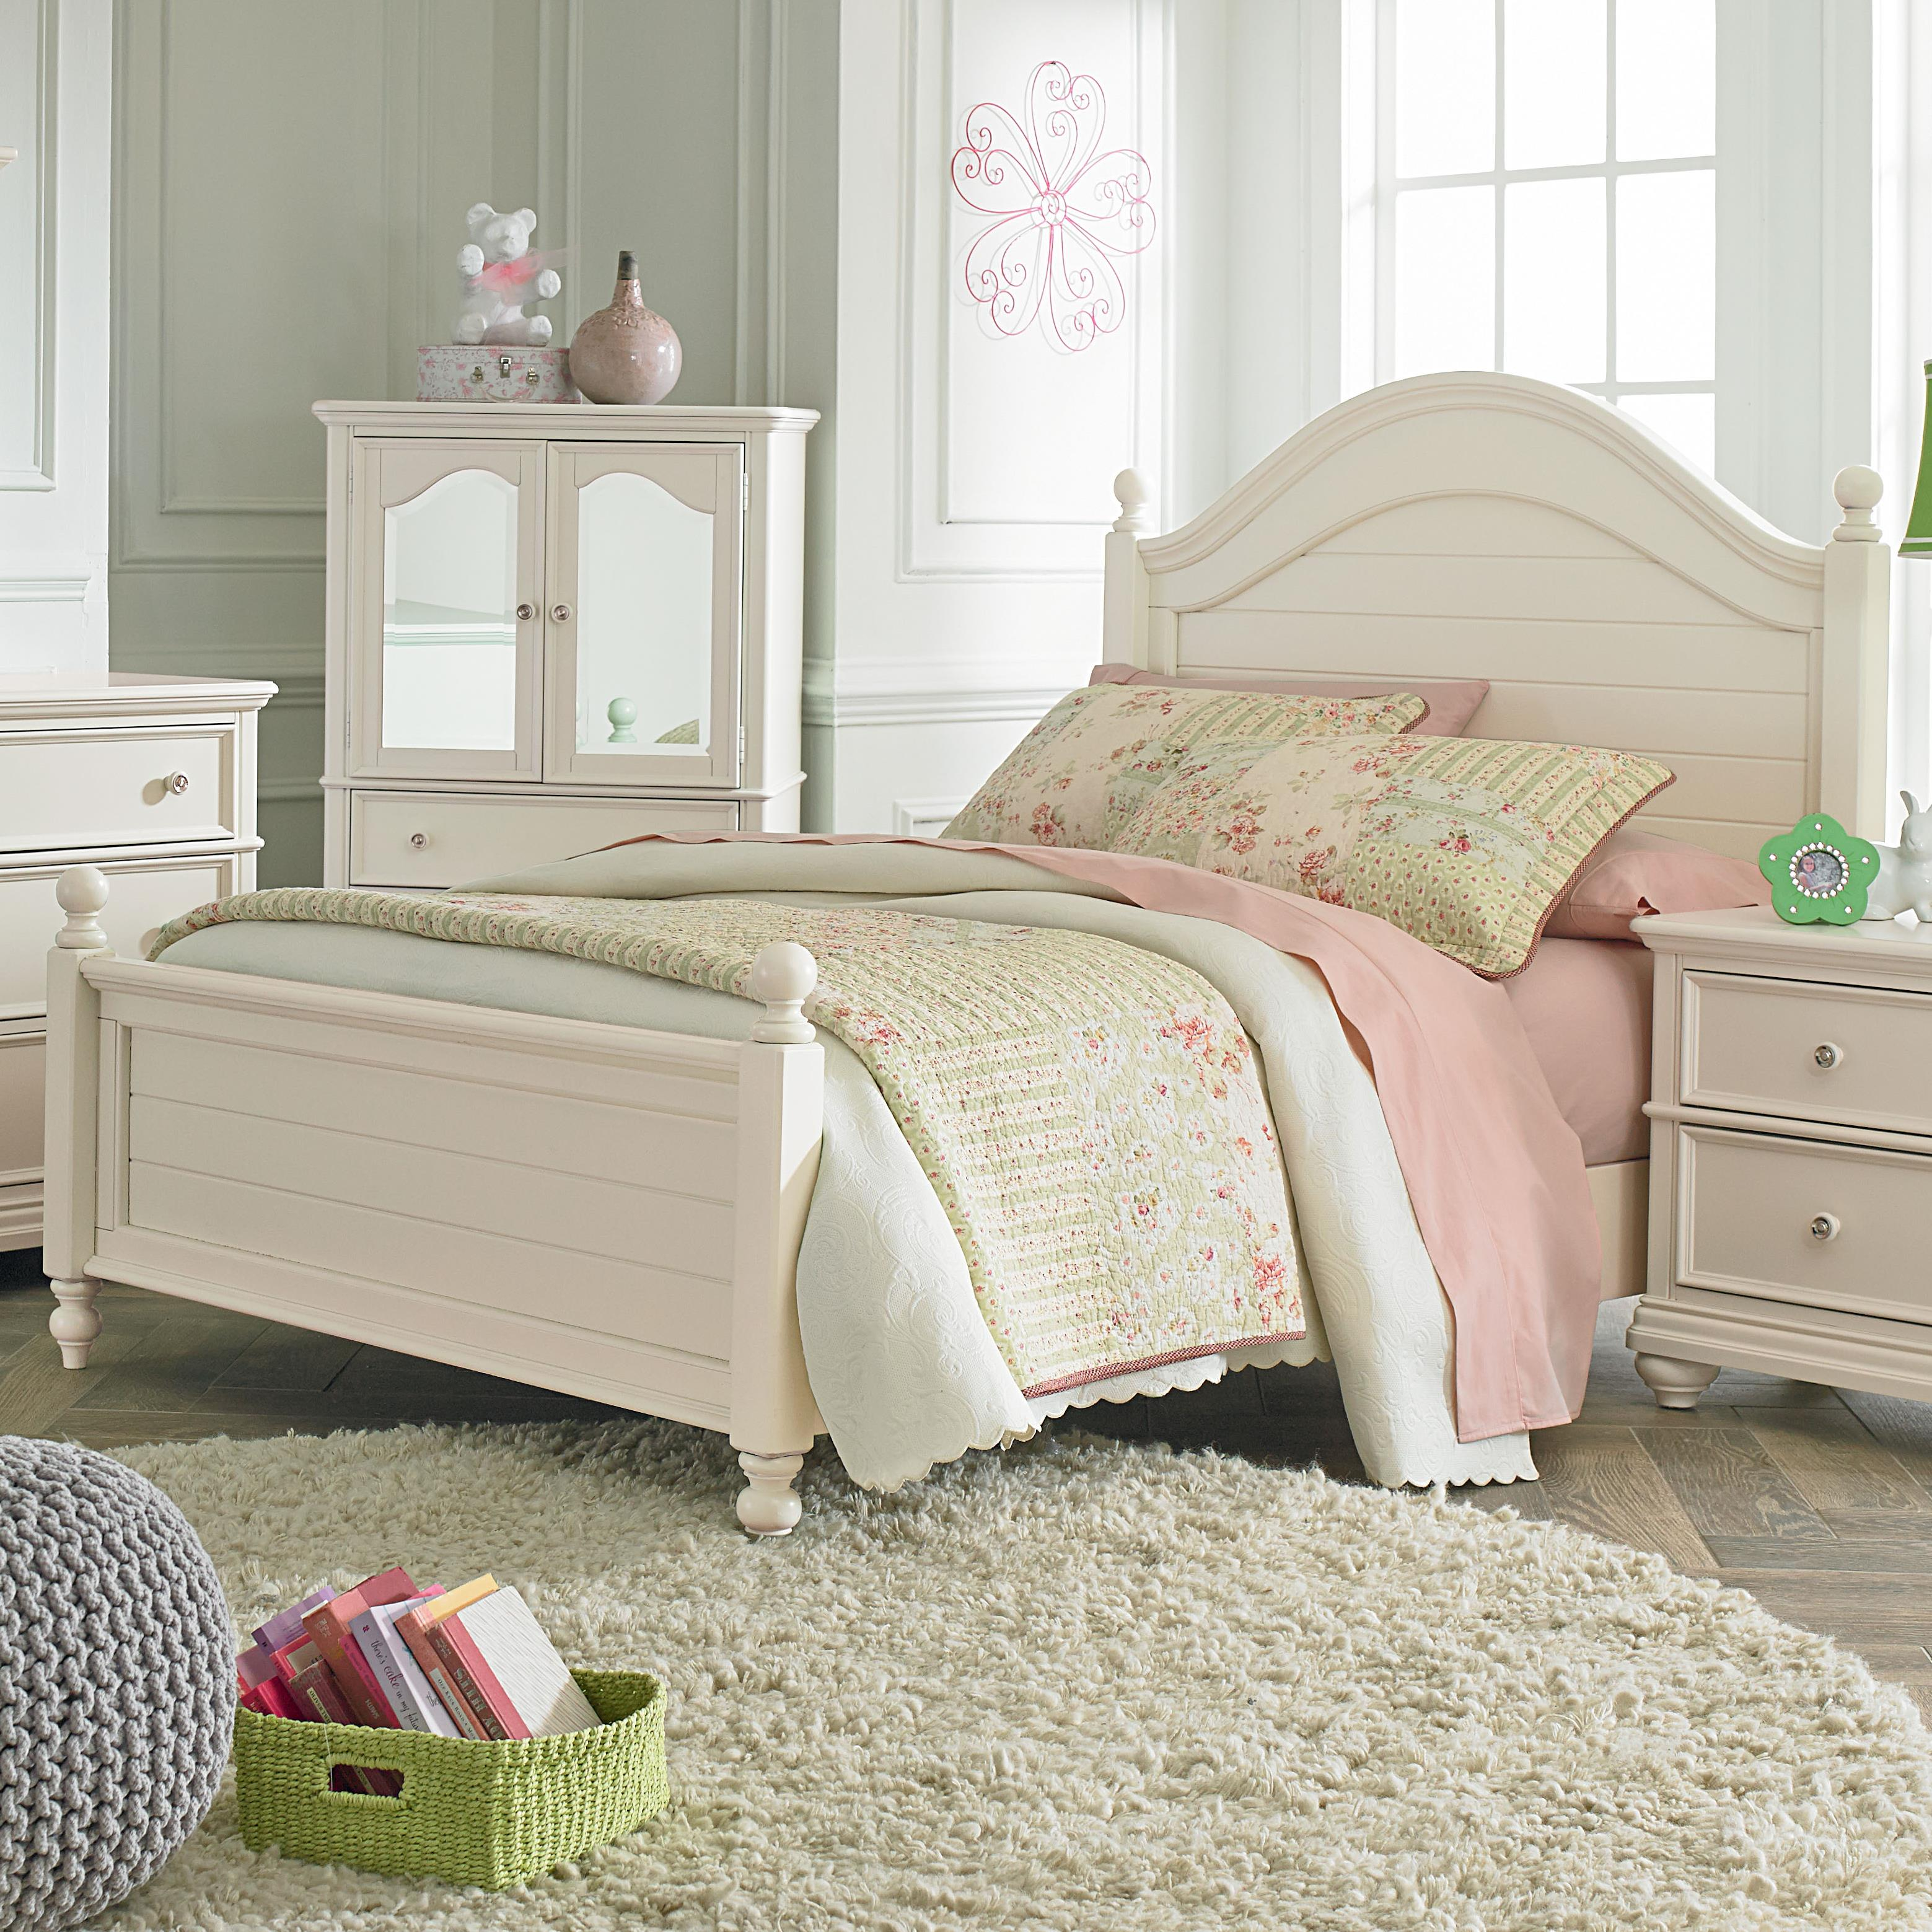 Standard Furniture Camellia Marshmallow Twin Bed with Cannonball Bed Posts - Item Number: 95201+02+03